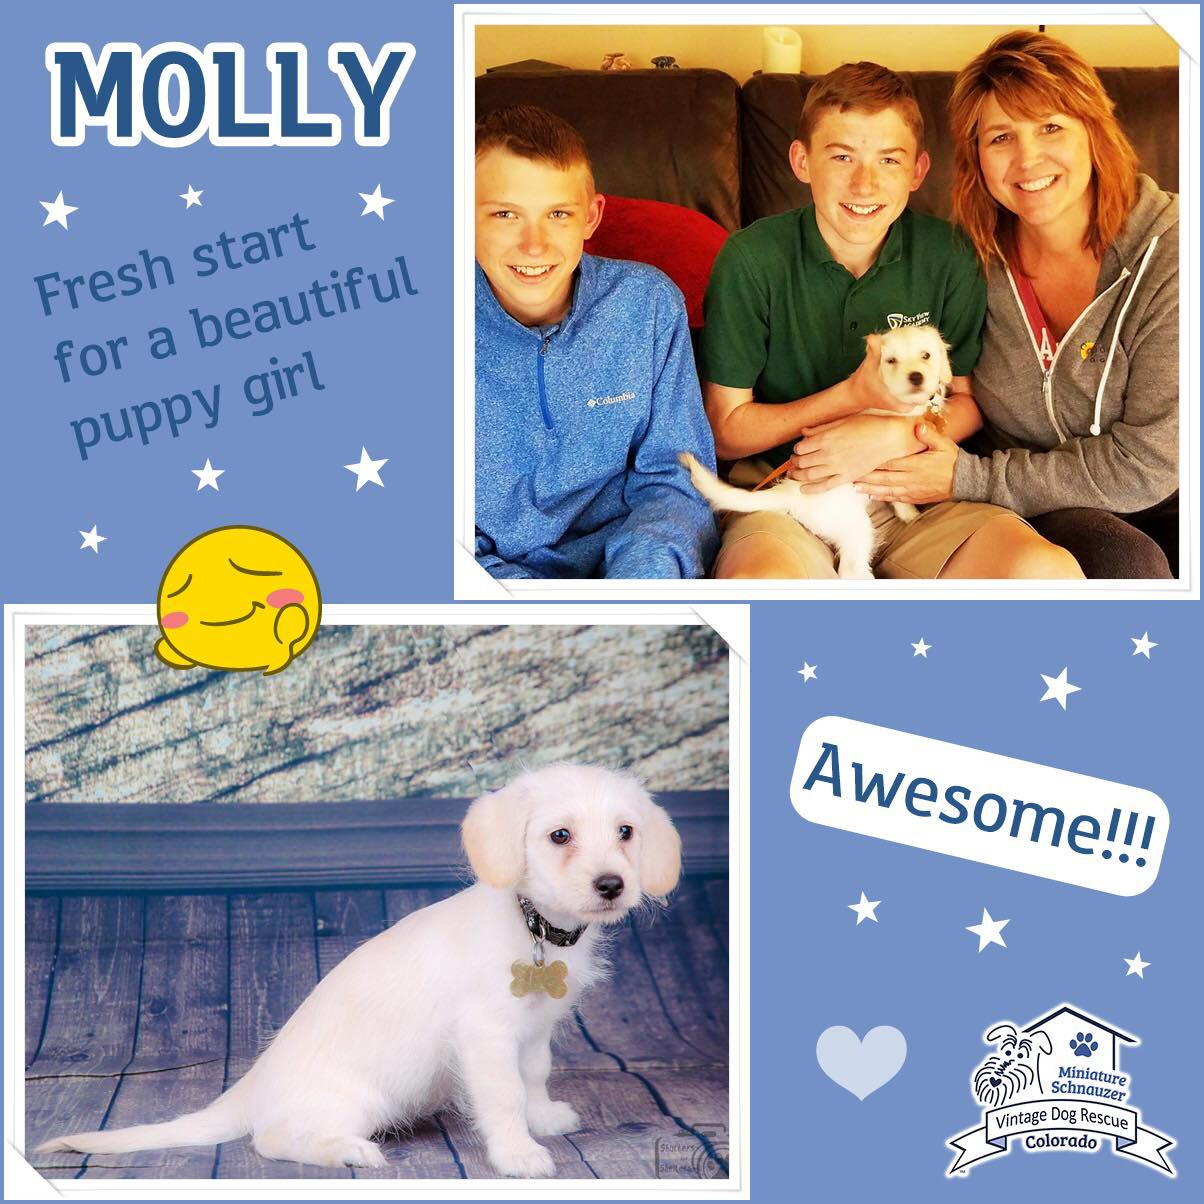 Molly was adopted!